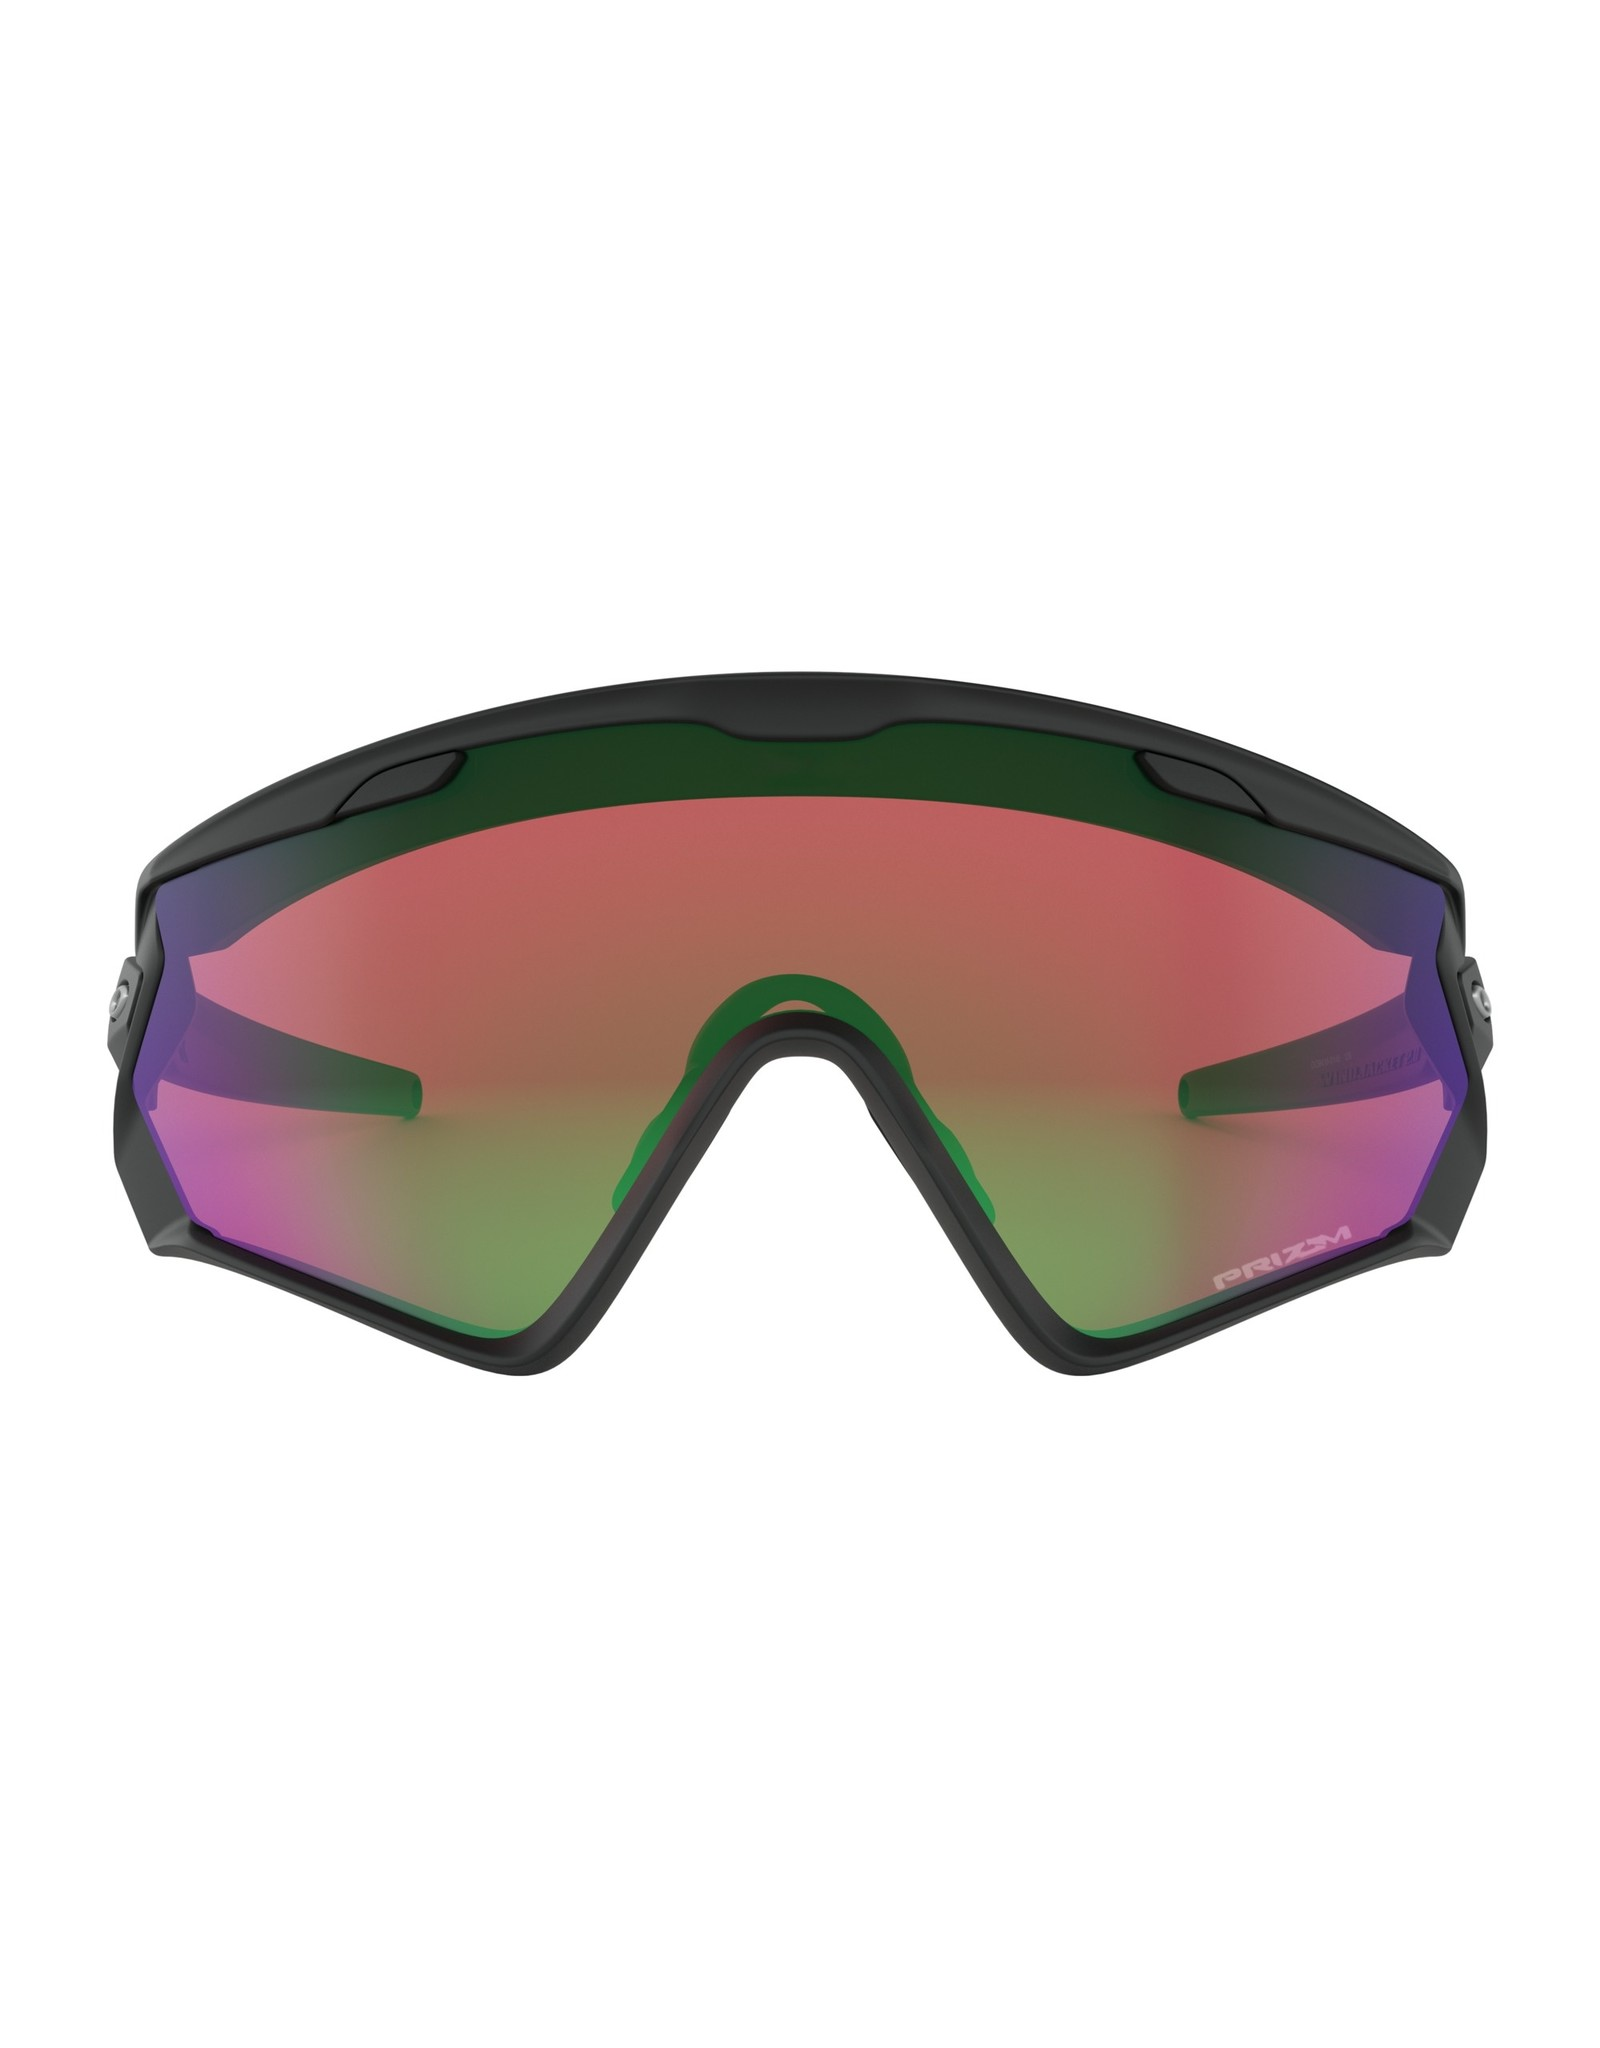 Oakley Wind Jacket 2.0 Matte Black w/ Prizm Snow Jade